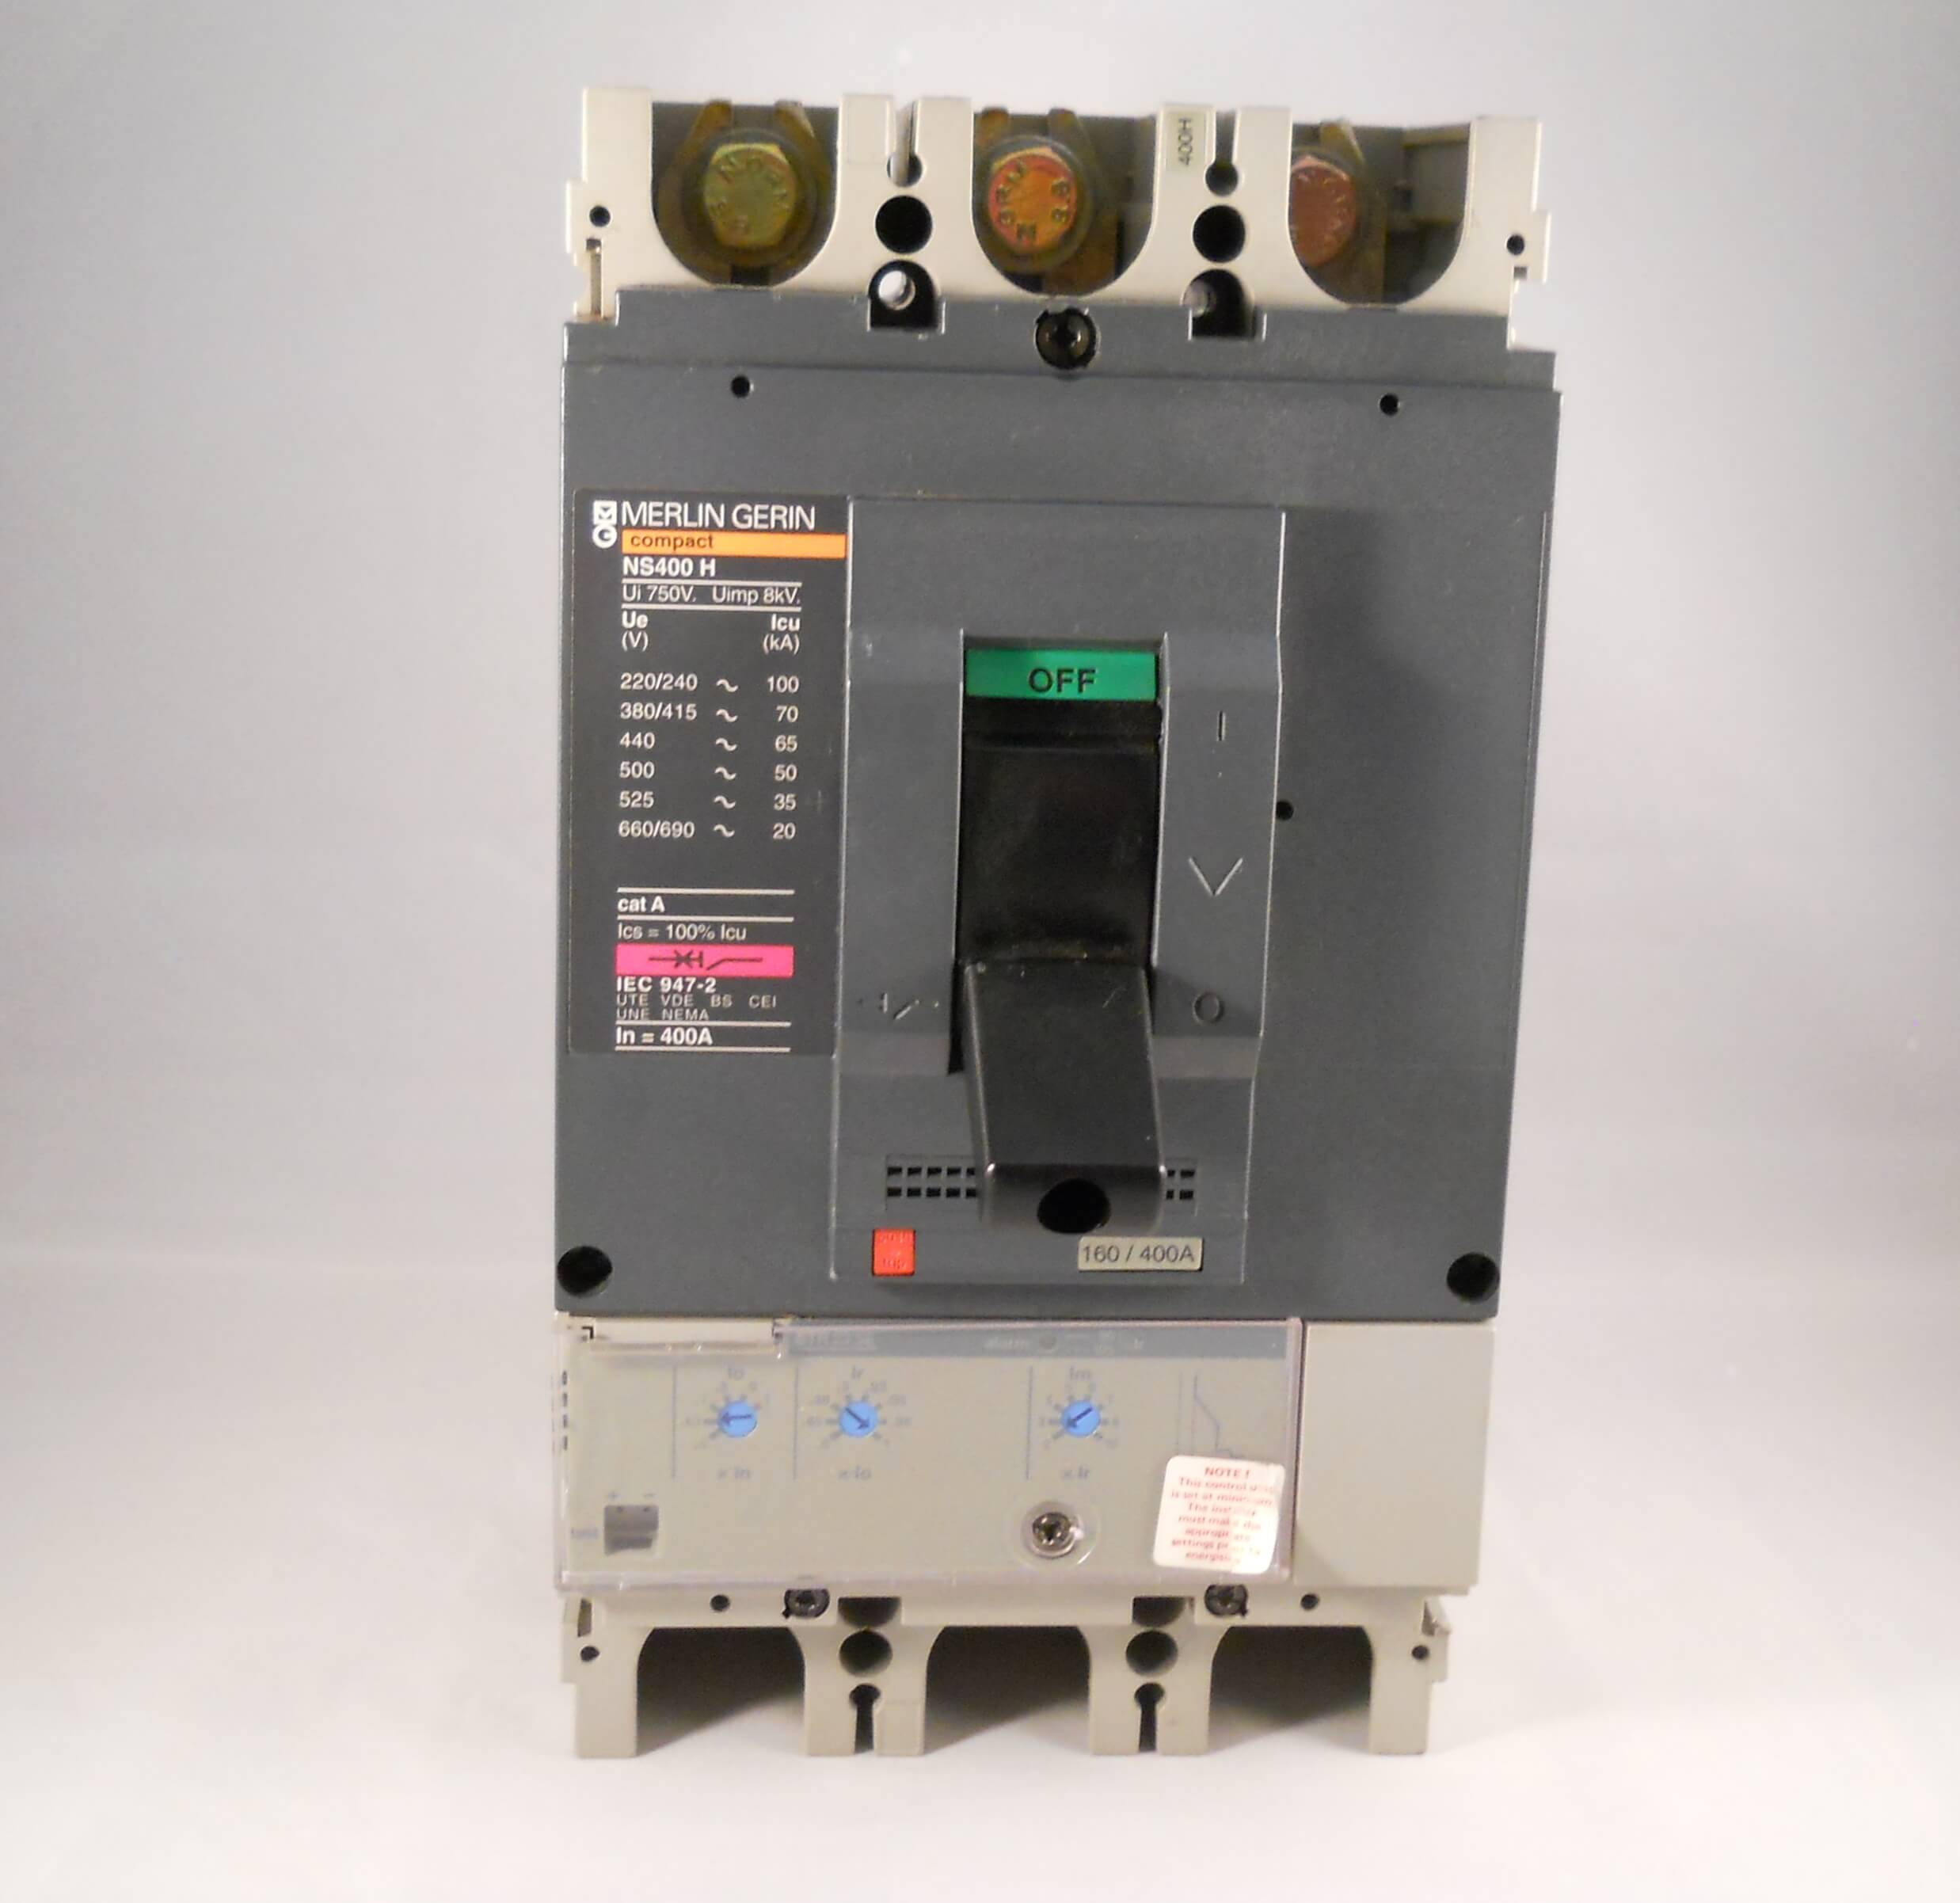 Merlin Gerin Mccb 400 Amp Triple Pole 3 Phase Compact 400a